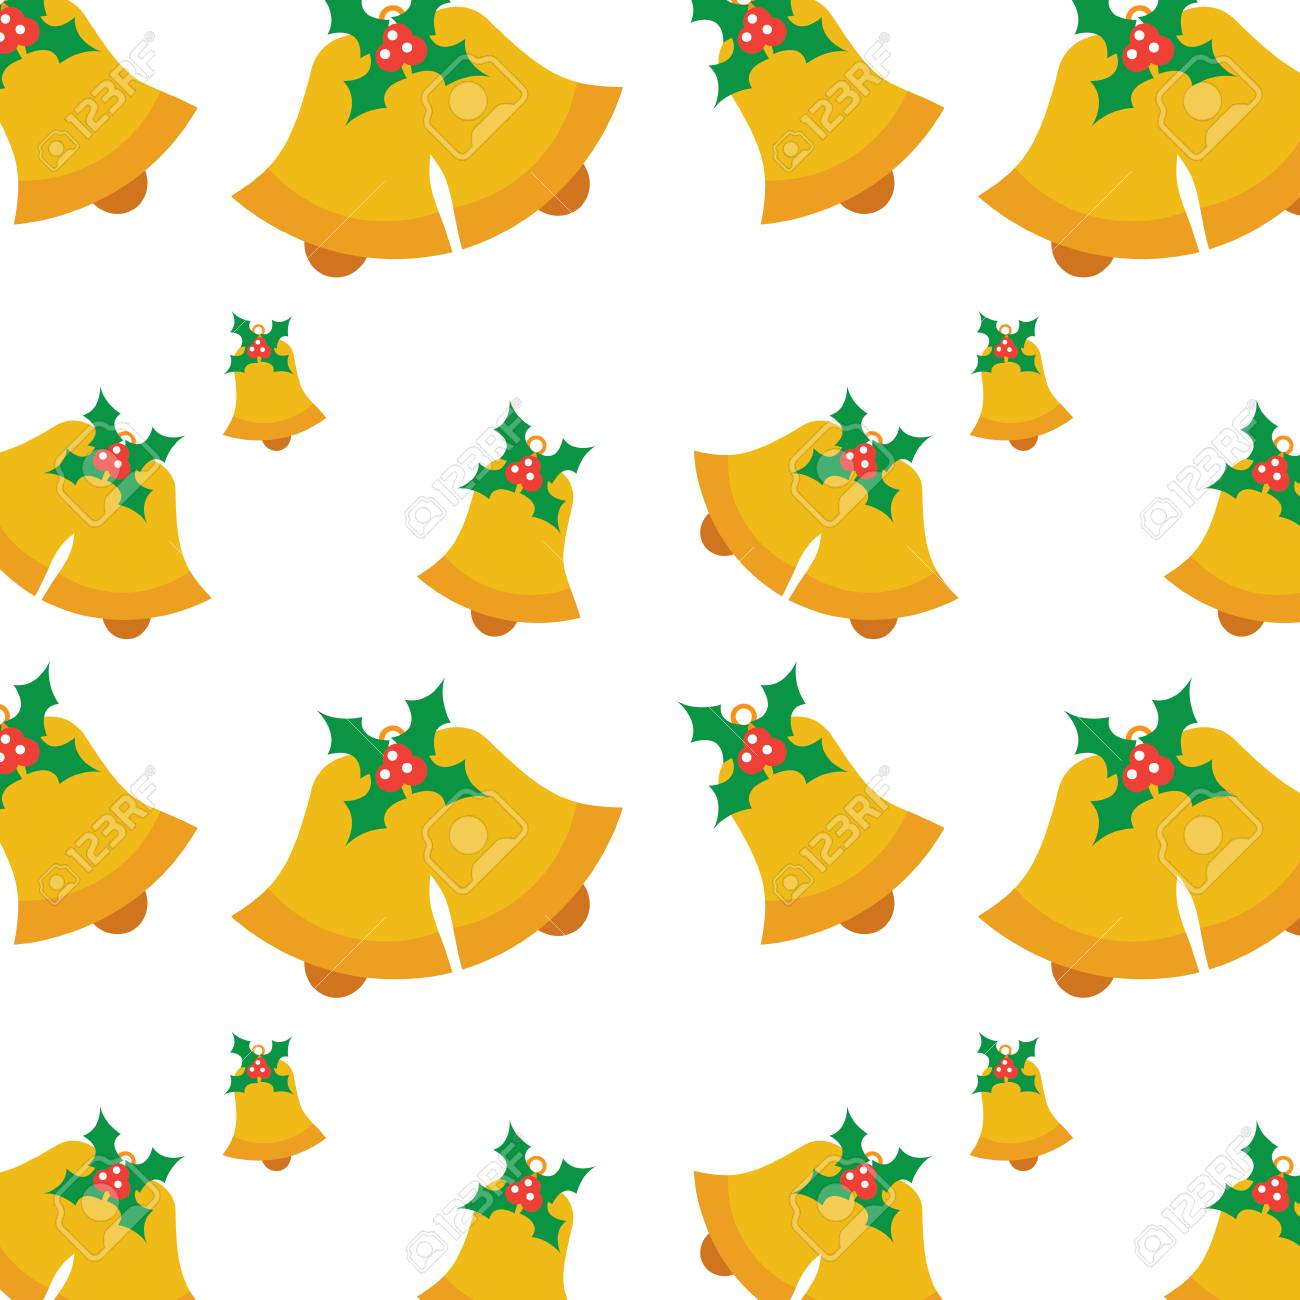 Christmas With Holly.Seamless Pattern With Jingle Bells Christmas With Holly Berry